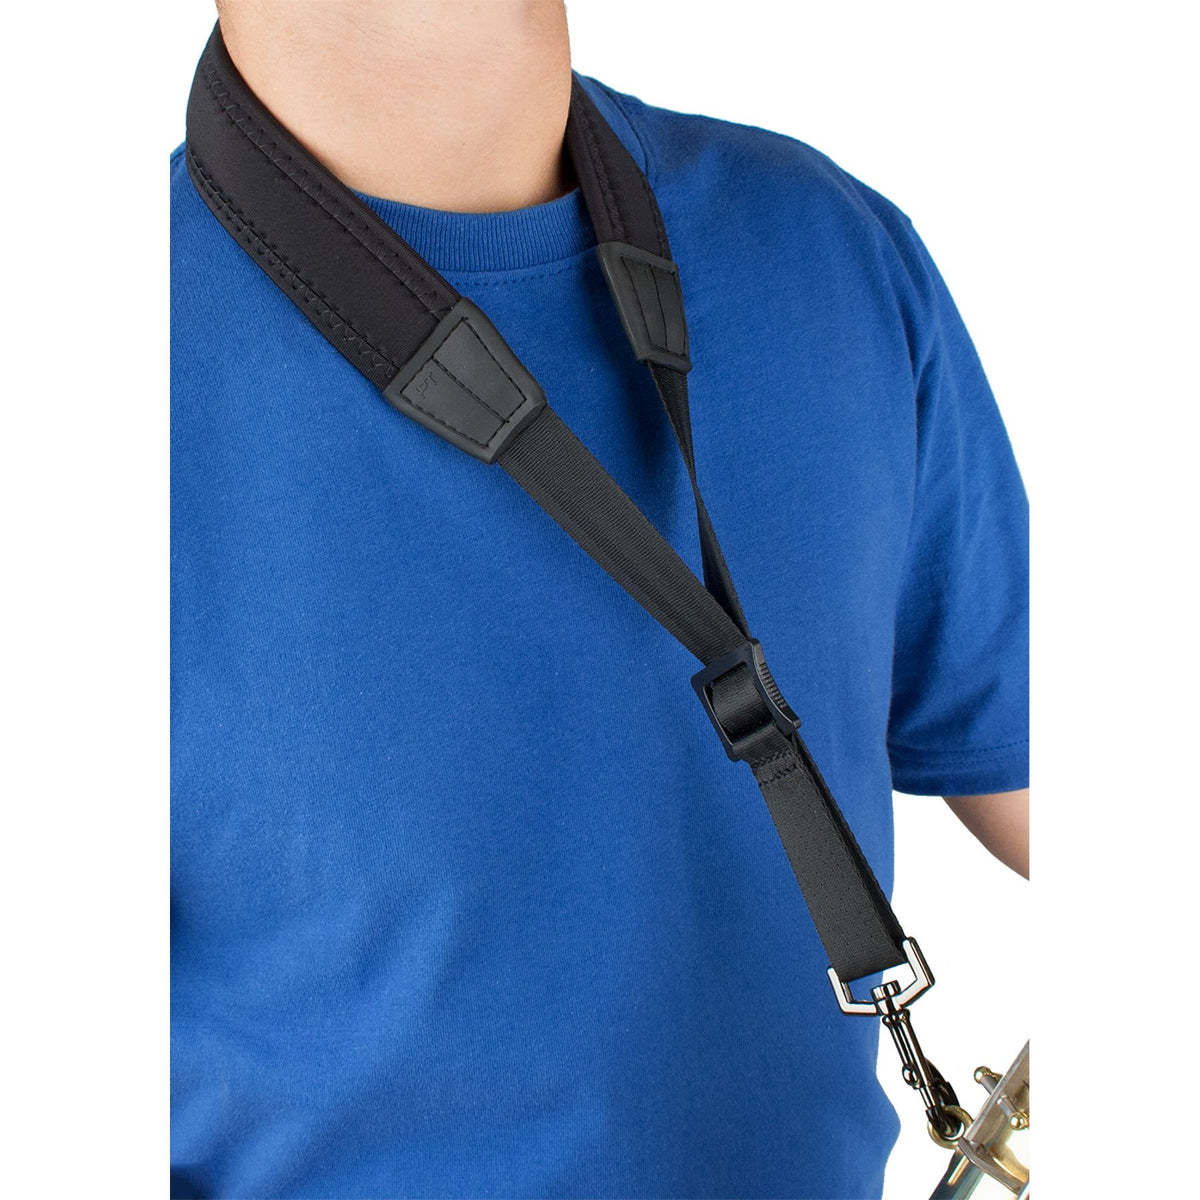 Protec - Neoprene Saxophone Neck Strap with Metal Snap-Accessories-Protec-Music Elements